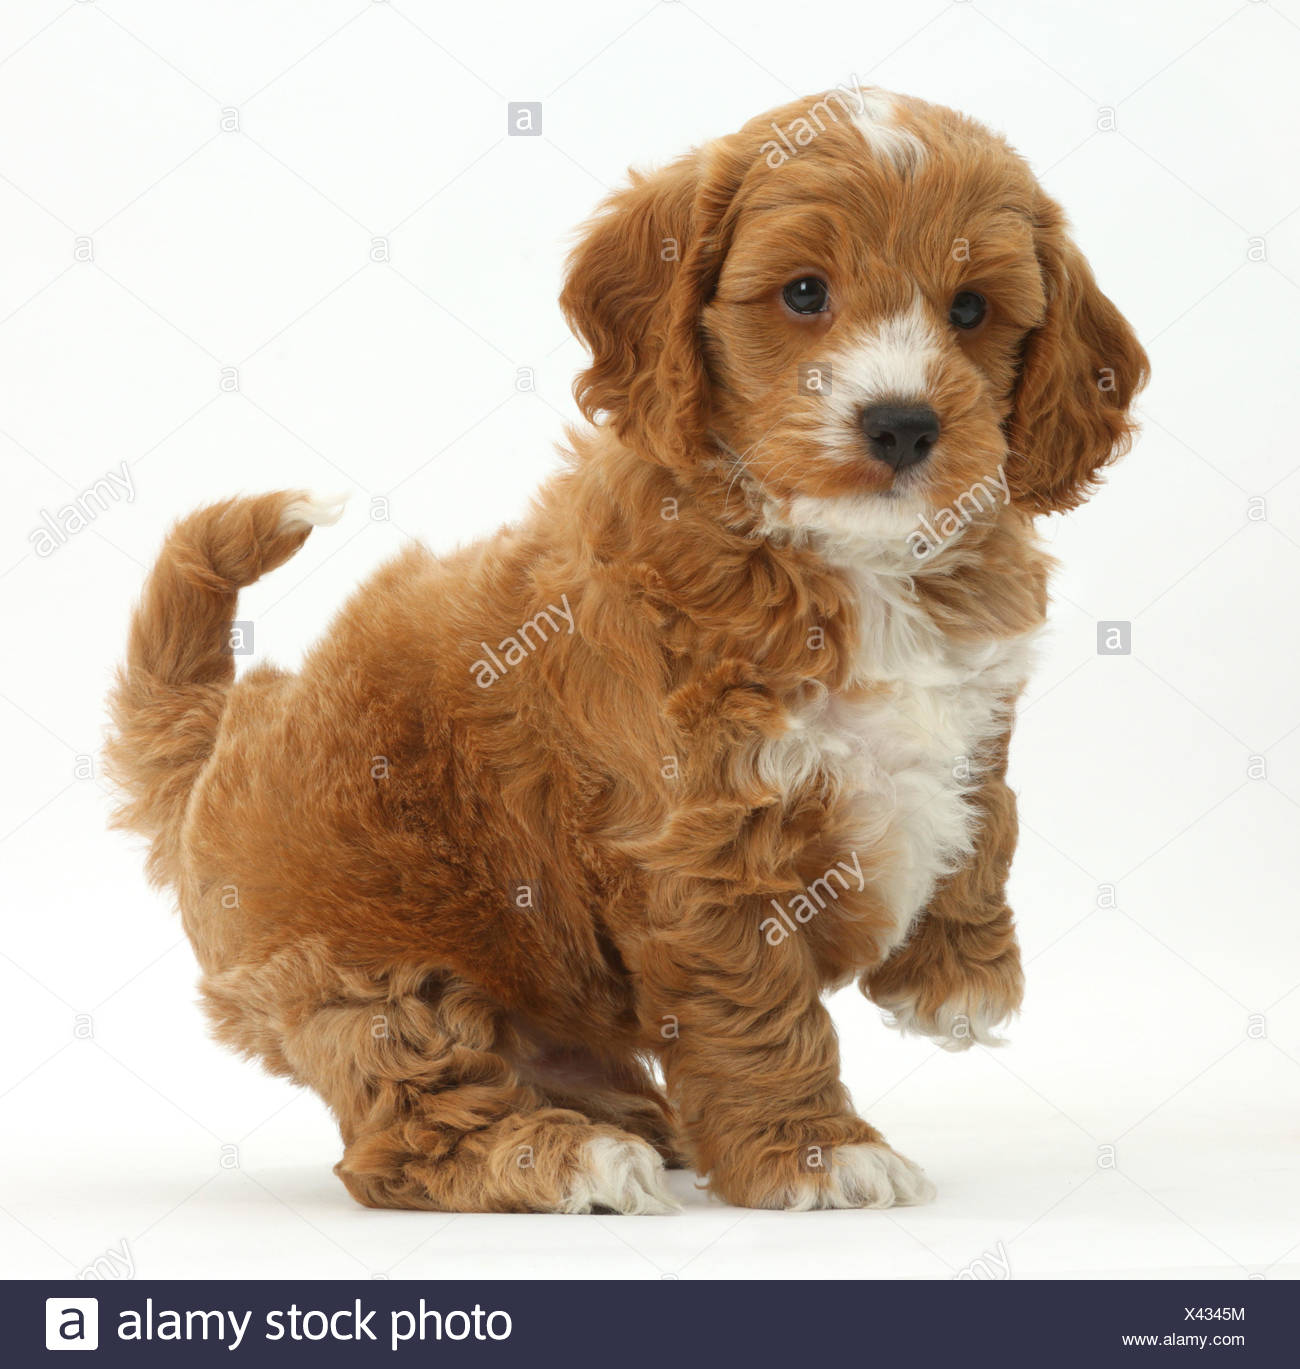 Cockapoo, Cocker spaniel cross Poodle puppy with paw raised. - Stock Image